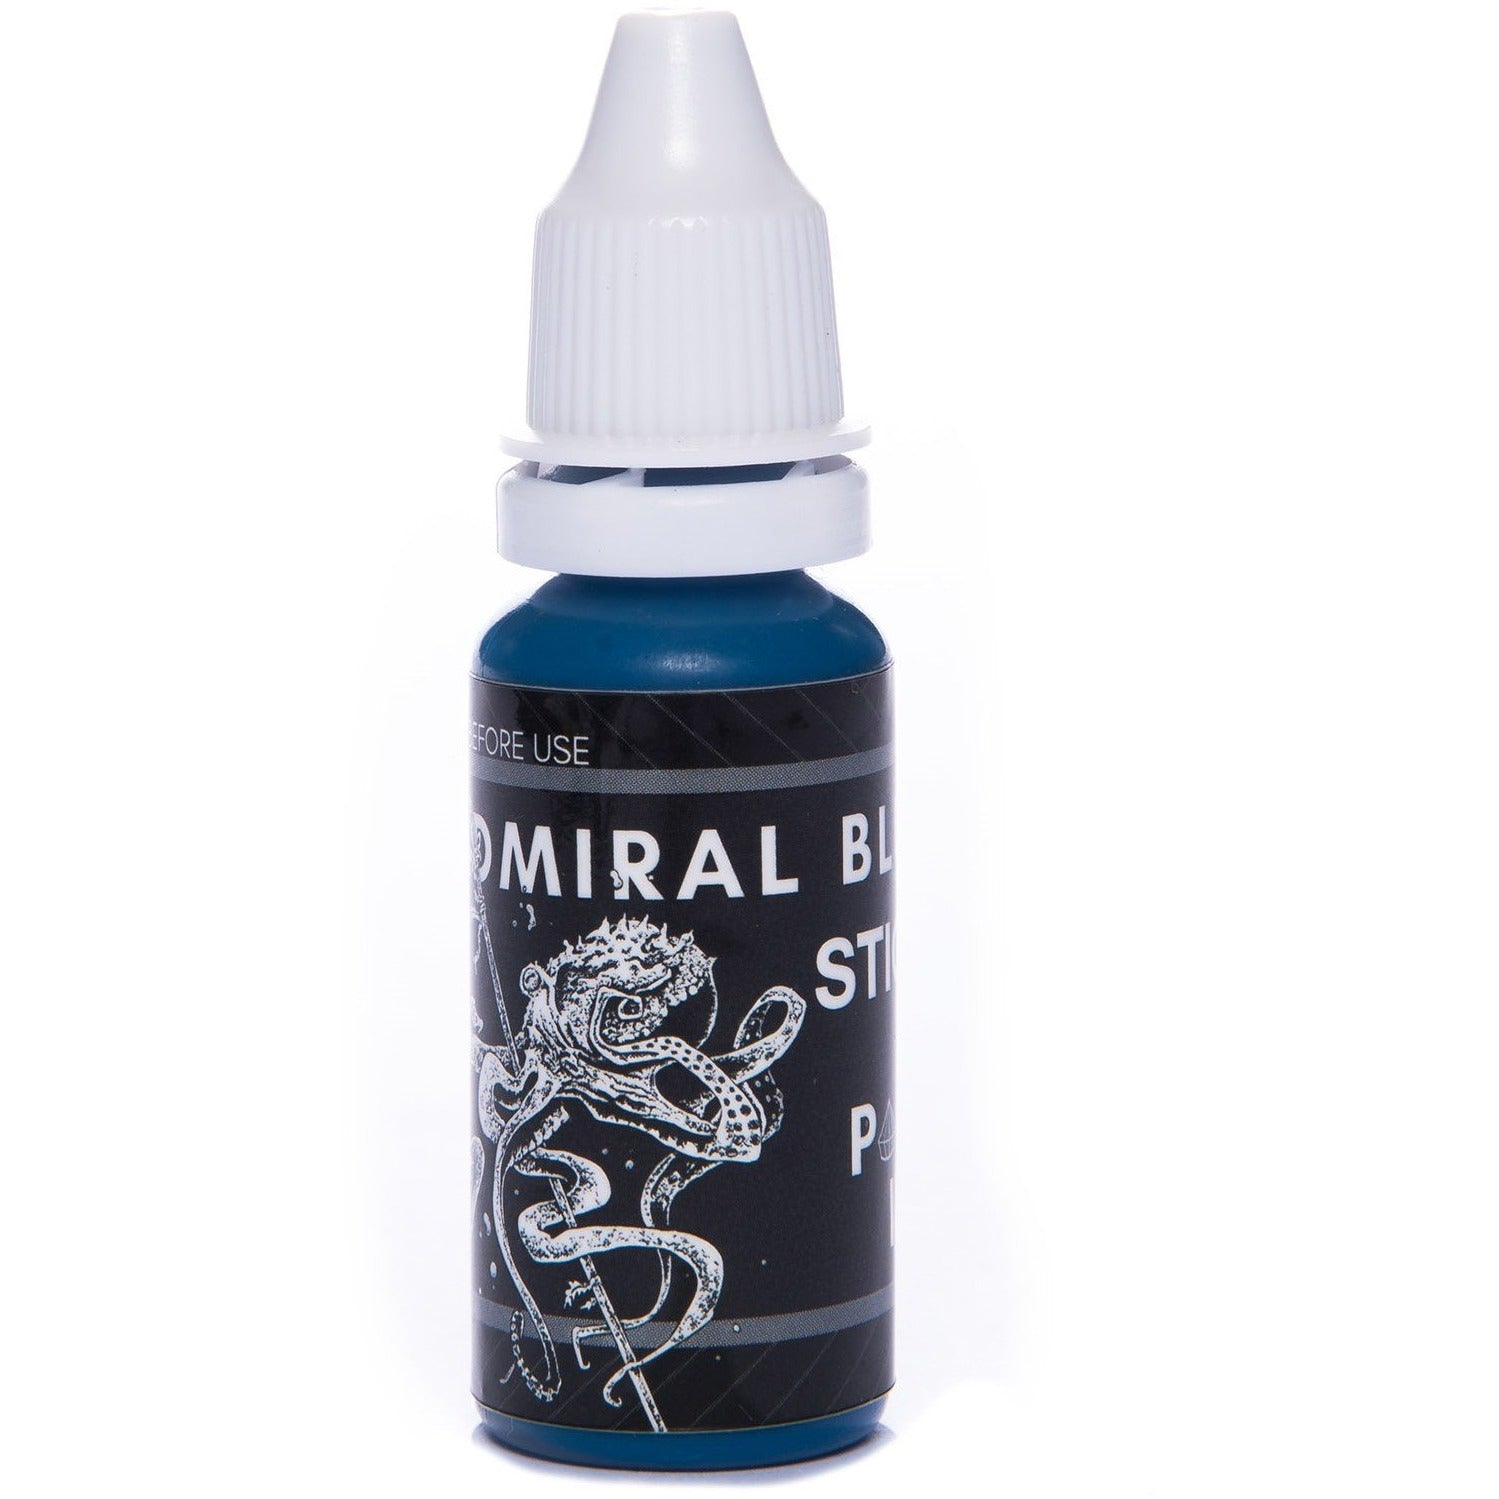 Admiral Blue - Stick & Poke Tattoo Ink-Single Needle-30ml-SINGLE NEEDLE Stick & Poke Tattoo